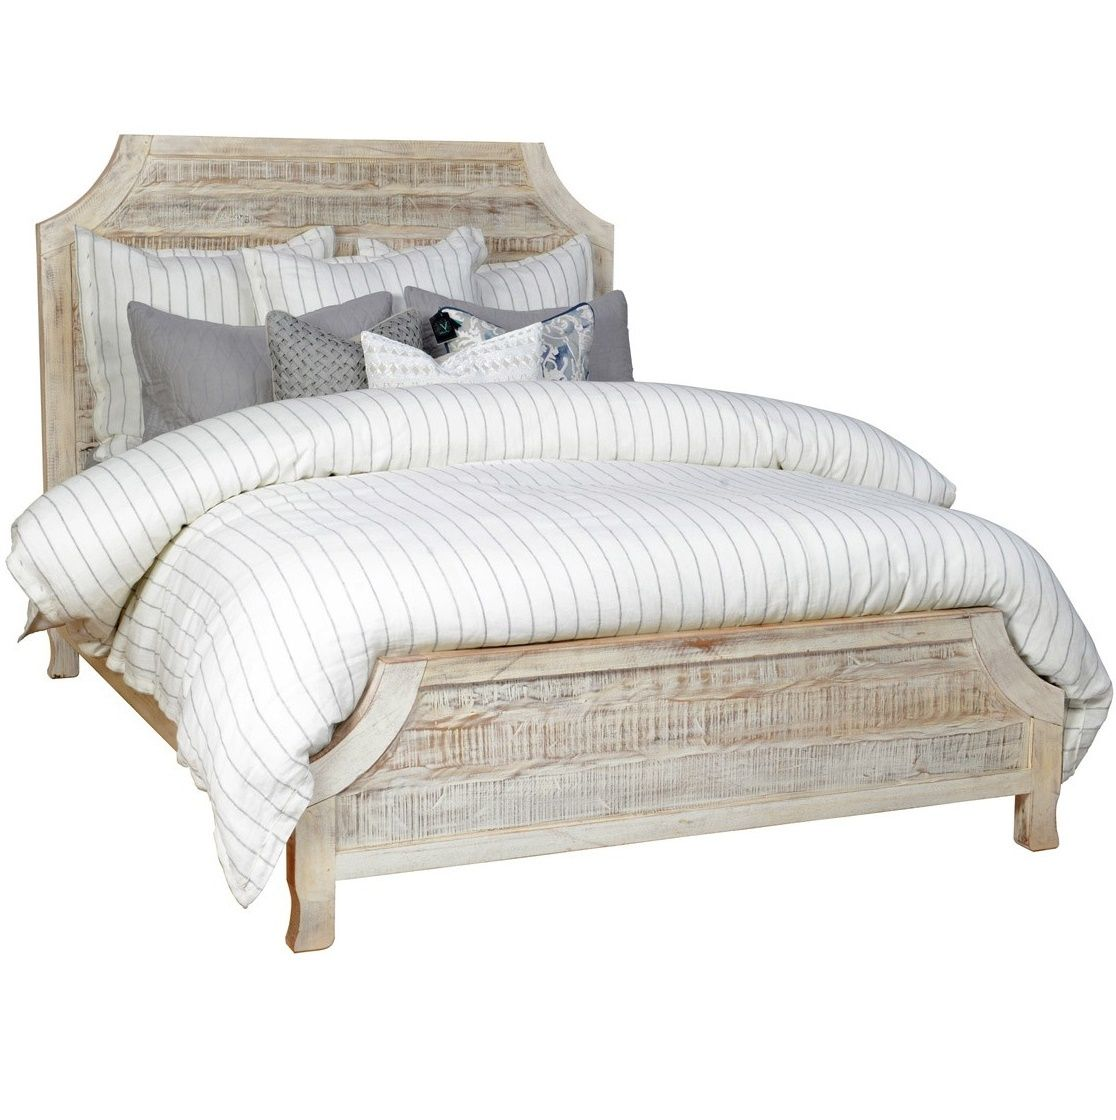 Vintage Rustic Reclaimed Wood Aria Queen Size Bed Frame In Grey White Finish Our Bedroom Furniture Is Constructed From Solid Hardwoods